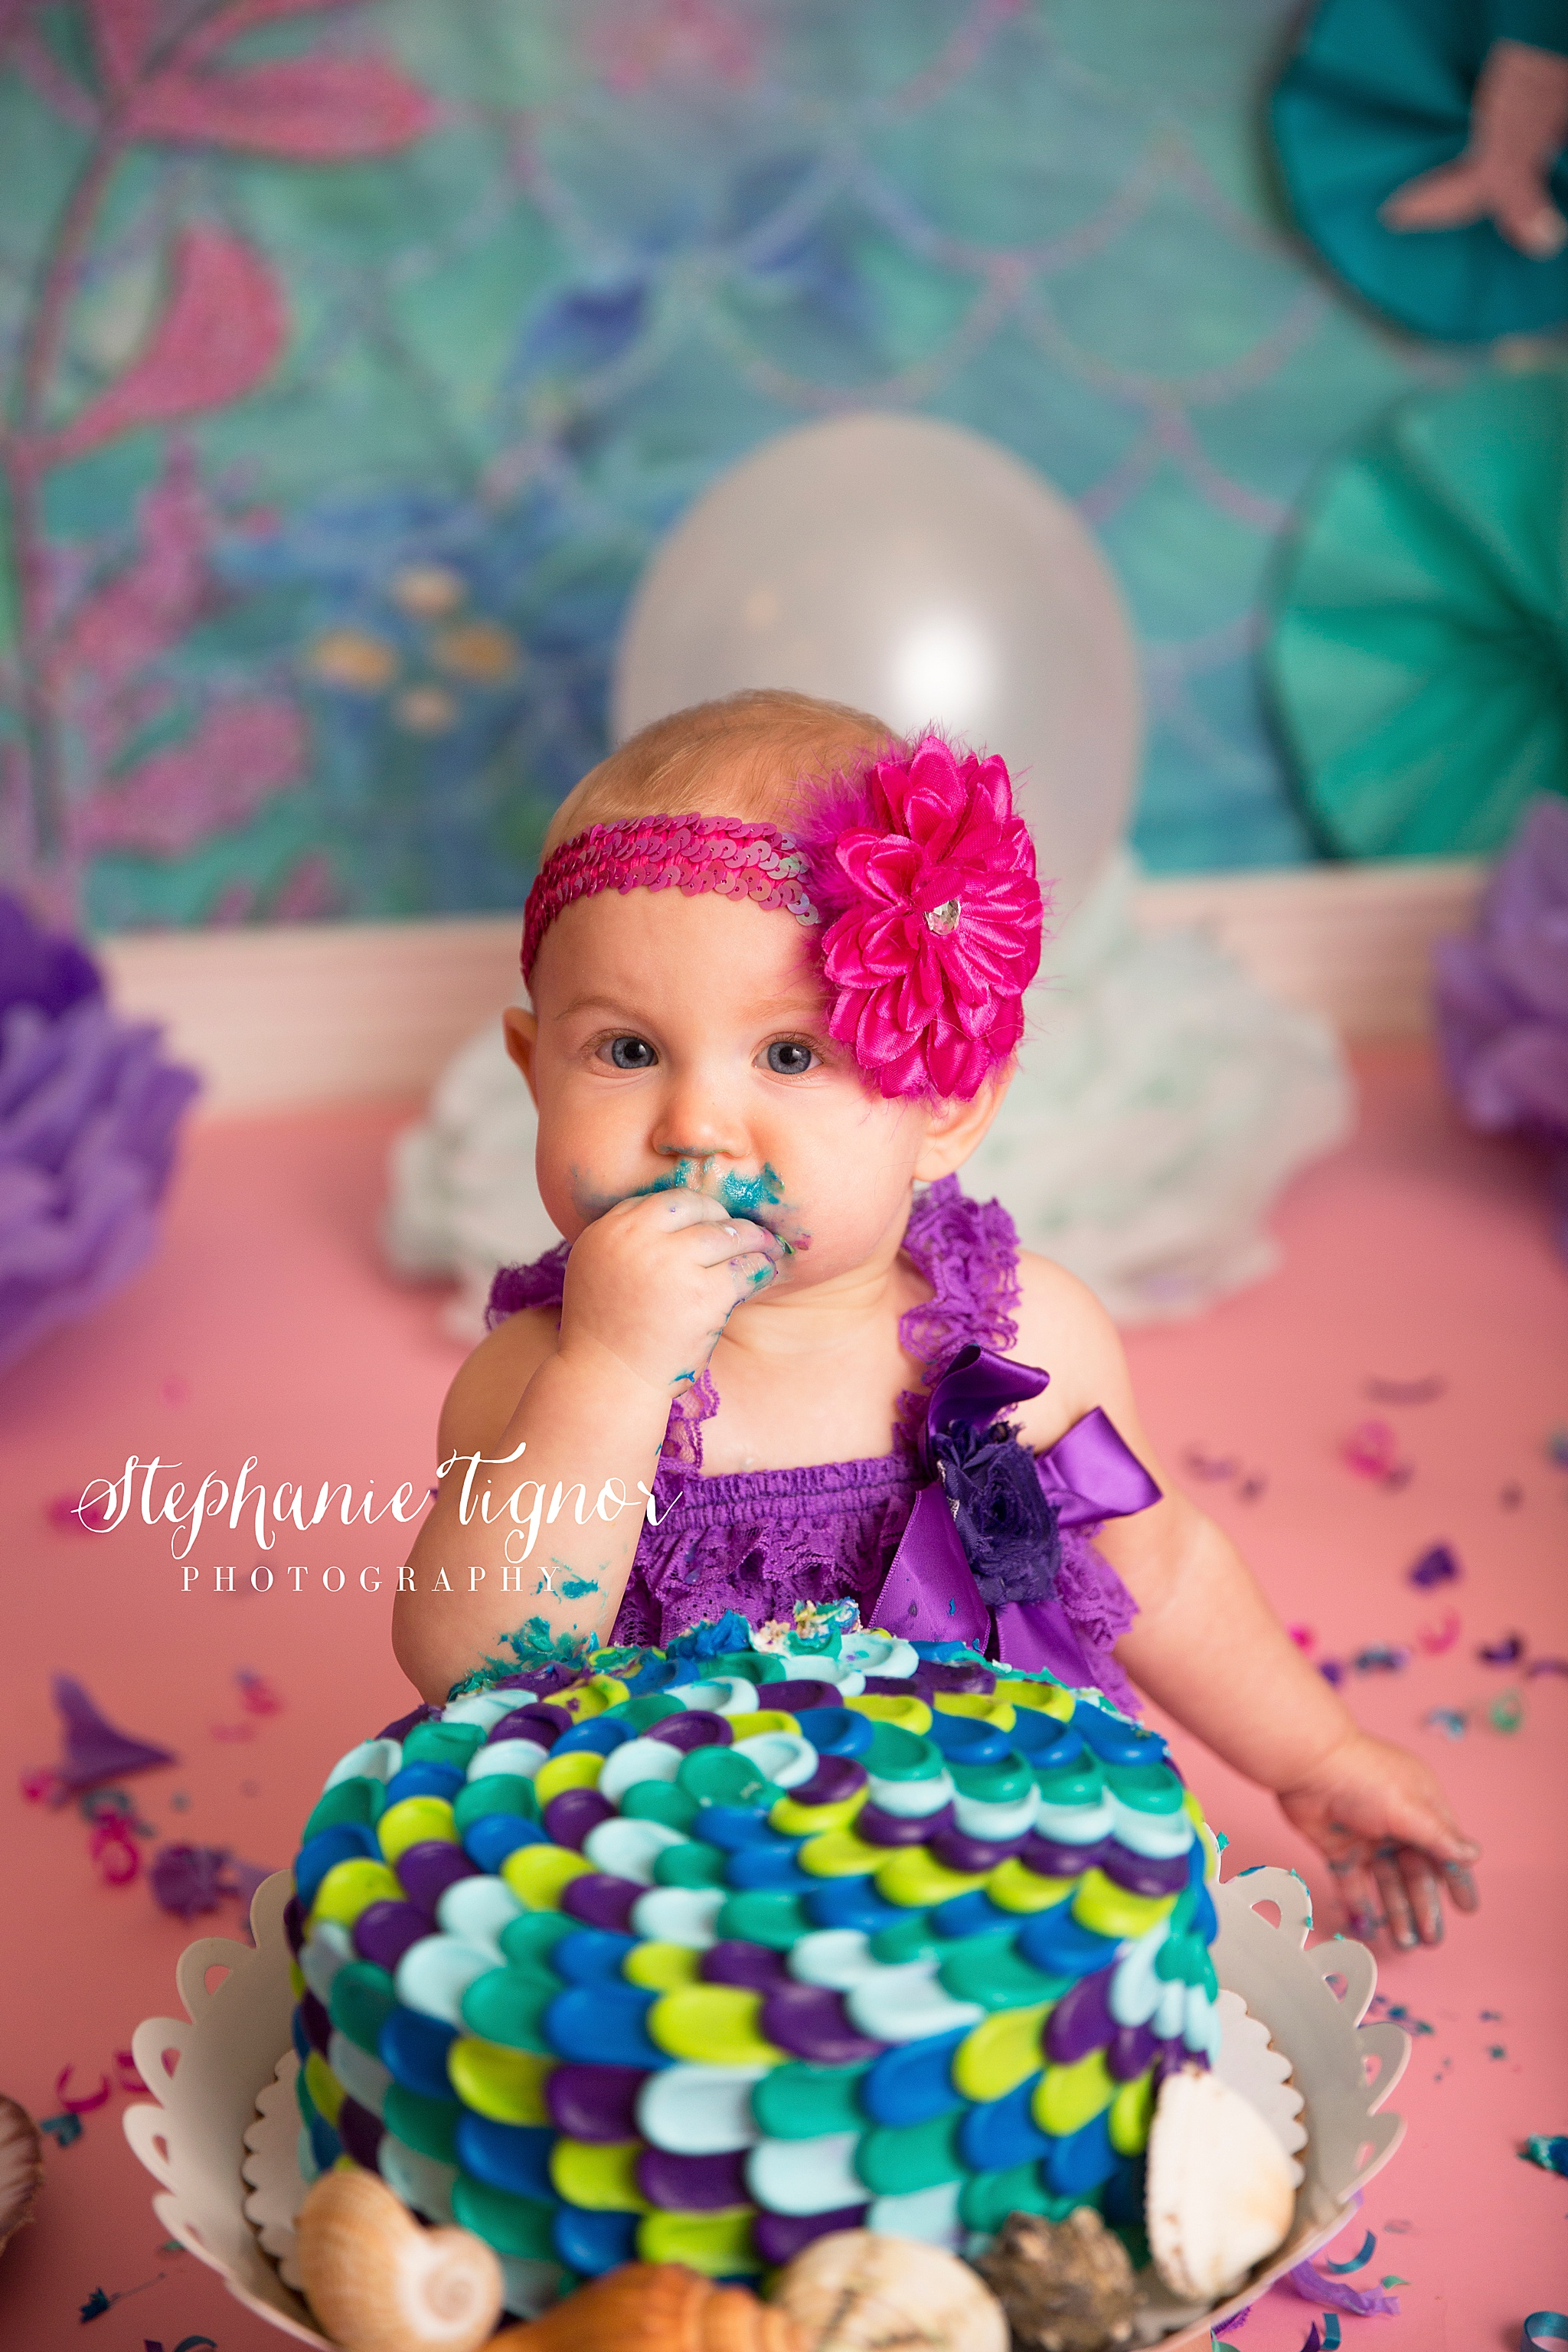 Stephanie Tignor Photography_Cake Smash_0088.jpg